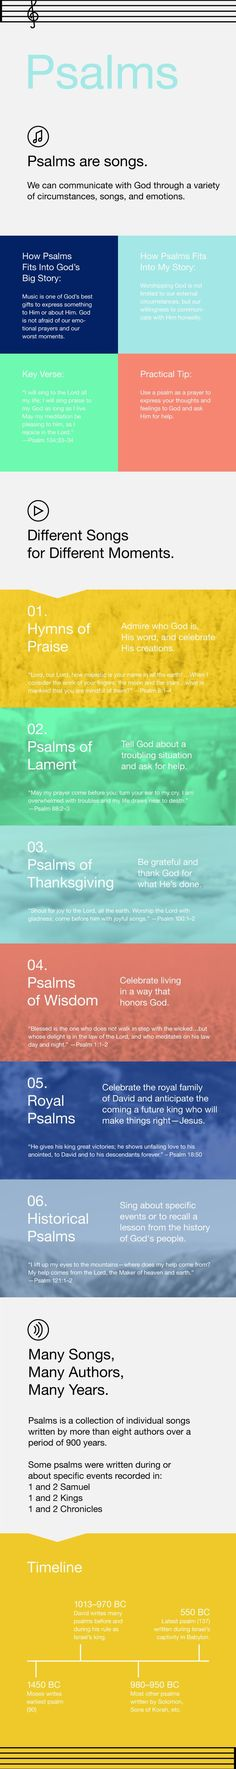 Everything You Need To Know About Psalms | Articles | NewSpring Church